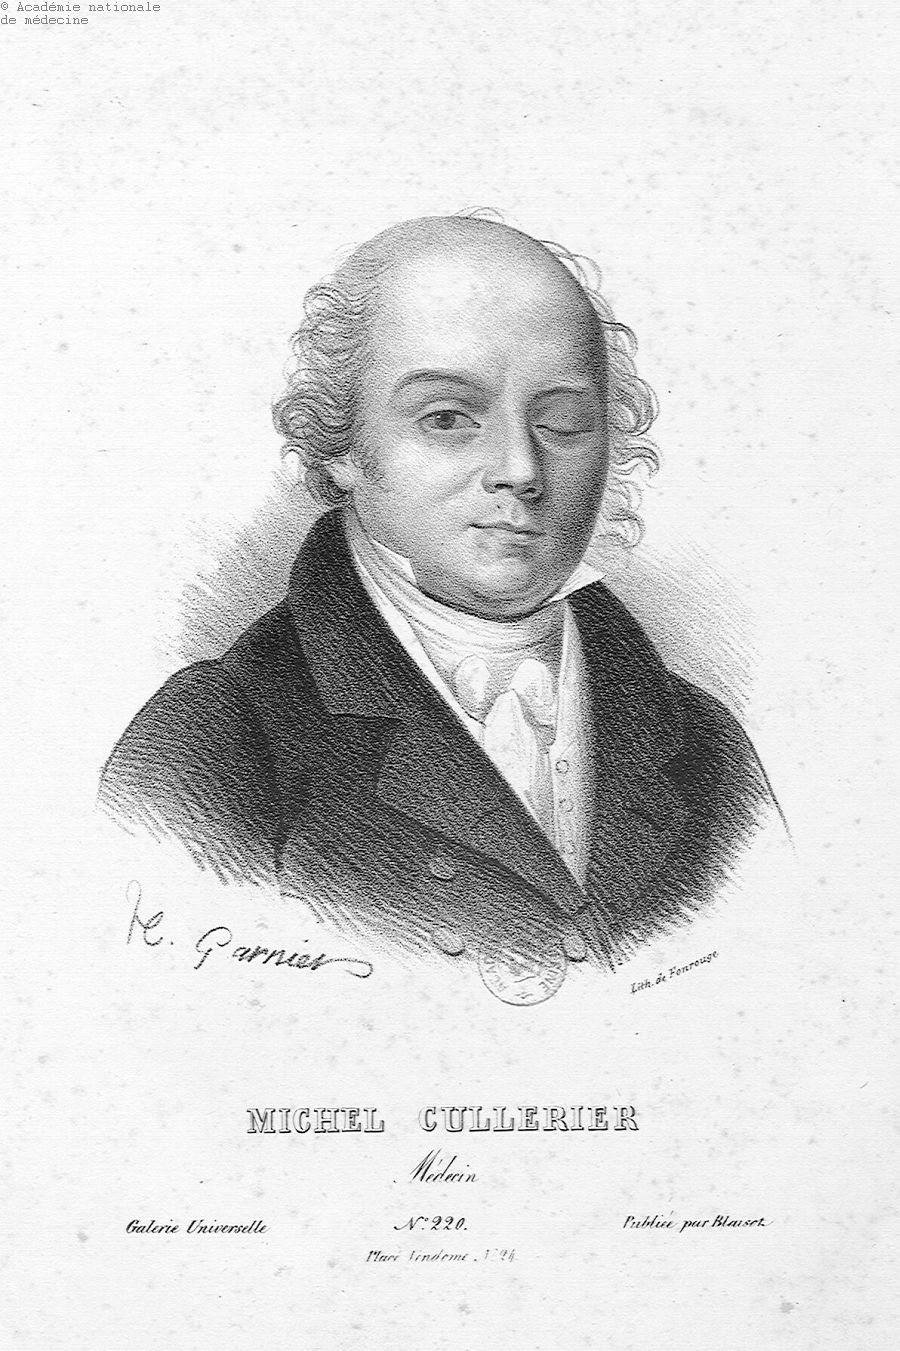 Cullerier, Michel (1758-1827) -  - anmpx13x0743